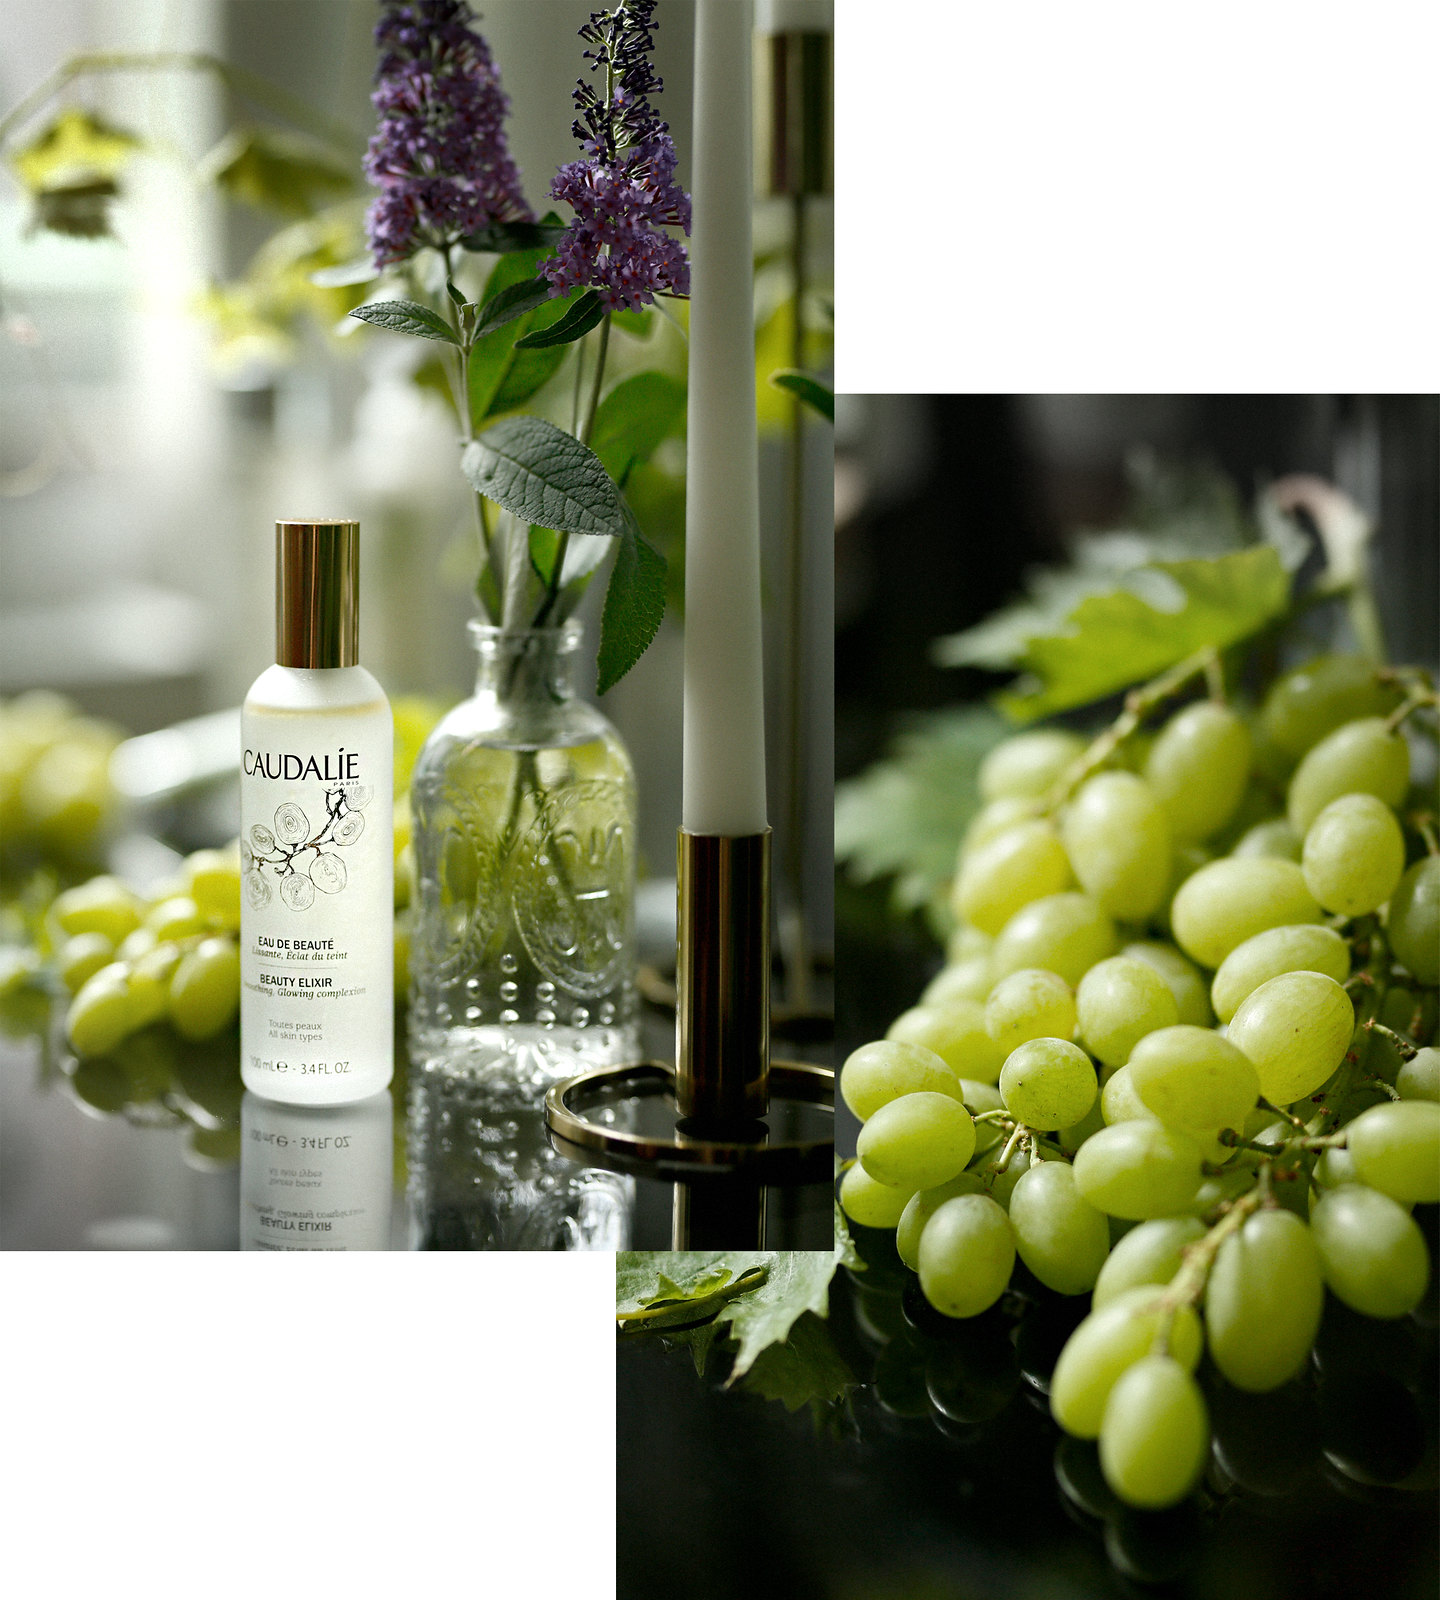 caudalie eau de beauté beauty elixir french beauty wine grapes weintrauben vino vines nature cosmetics mist water spray rosie huntington campaign summer francaise beautyblogger germanblogger cats & dogs beautyblog ricarda schernus düsseldorf 5